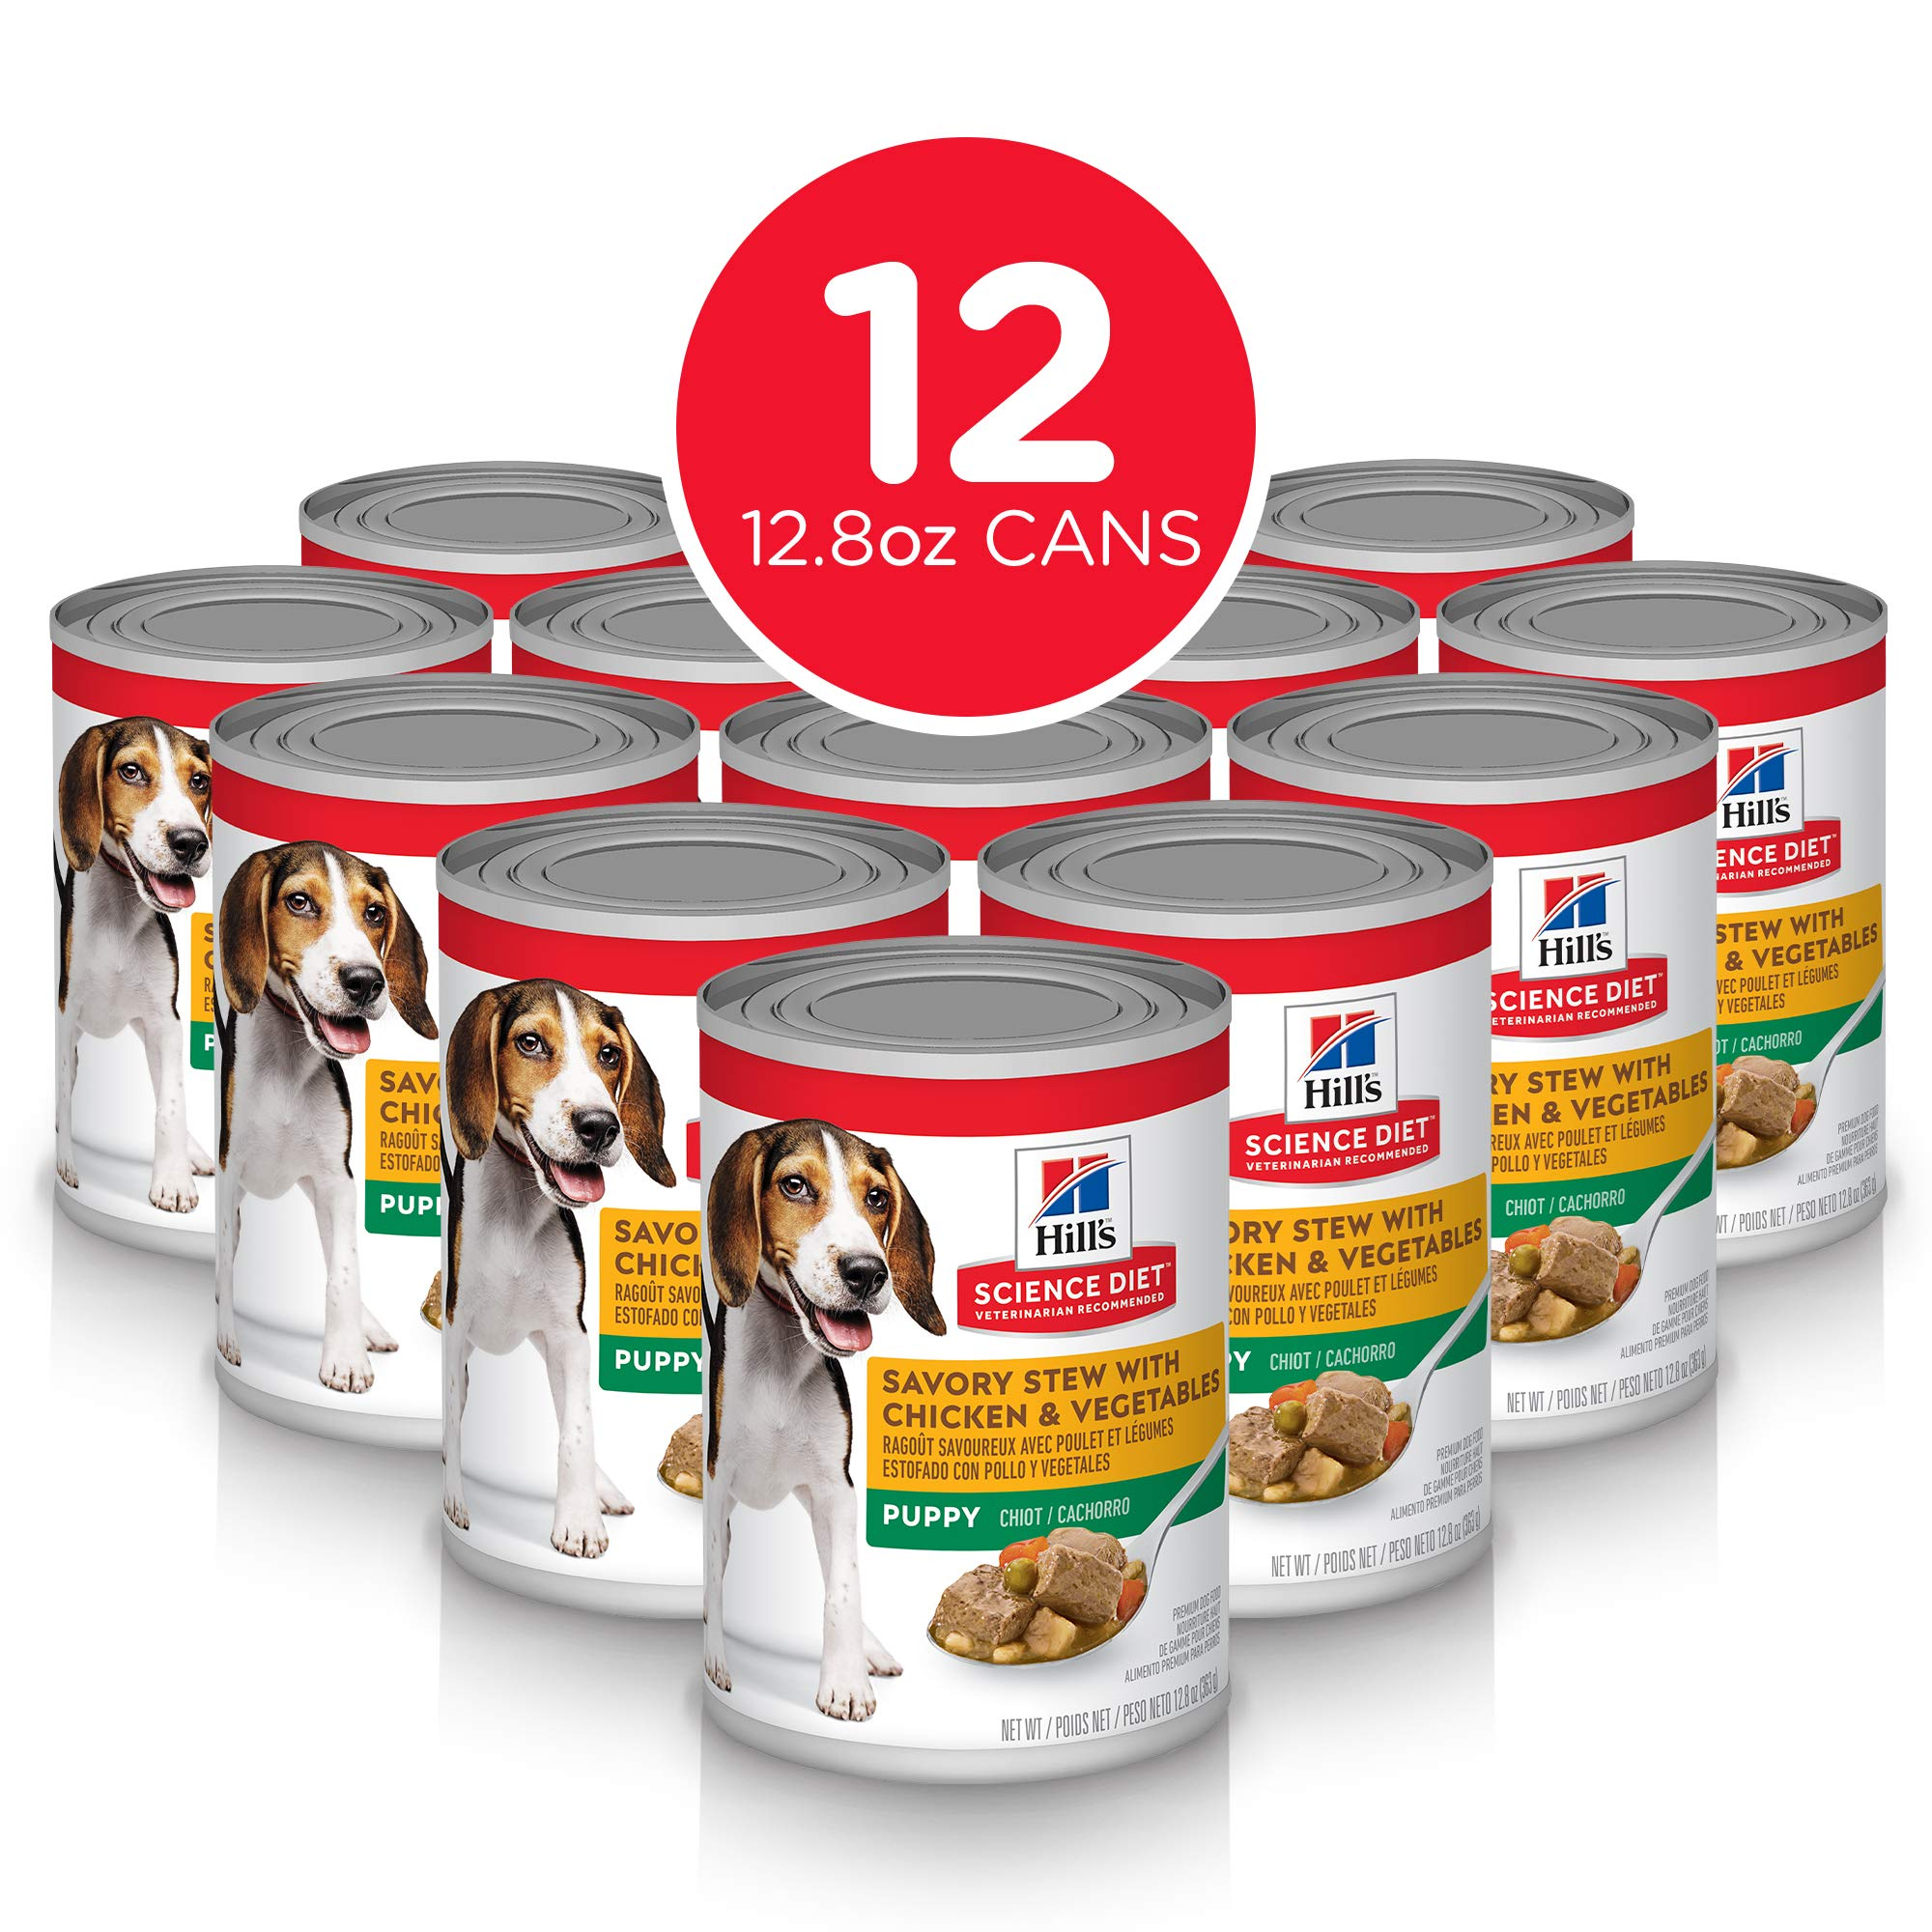 Hill's Science Diet Wet Dog Food, Puppy, Savory Stew with Chicken & Vegetables Recipe, 12.8 oz Cans, 12-pack by Hill's Science Diet